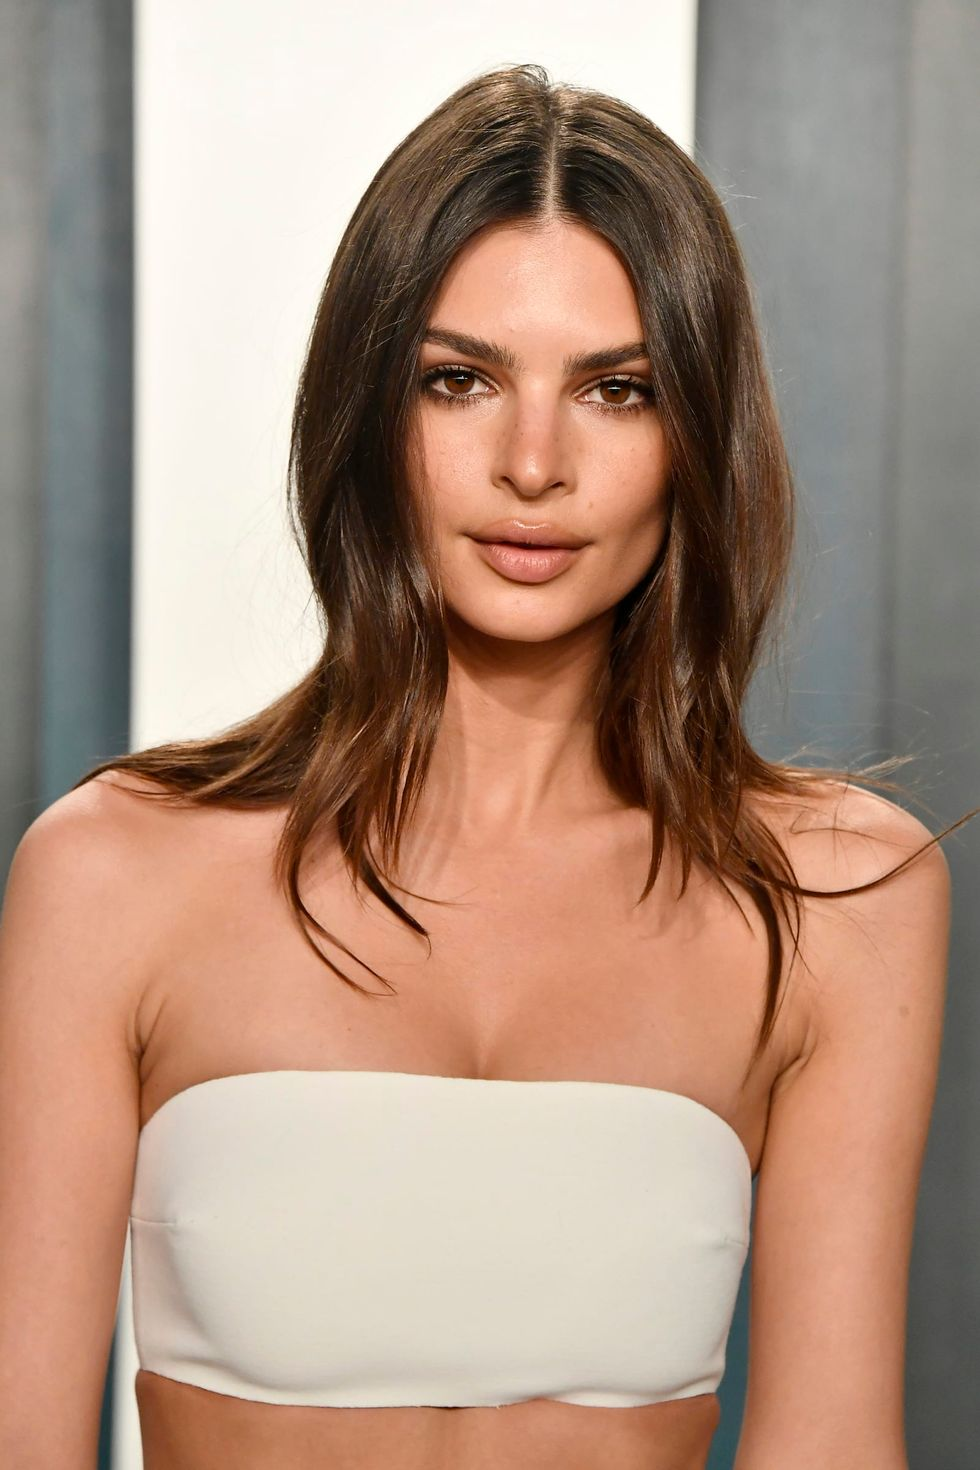 Emily Ratajkowski says Robin Thicke grabbed 'my bare breasts' on set of 'Blurred Lines' video